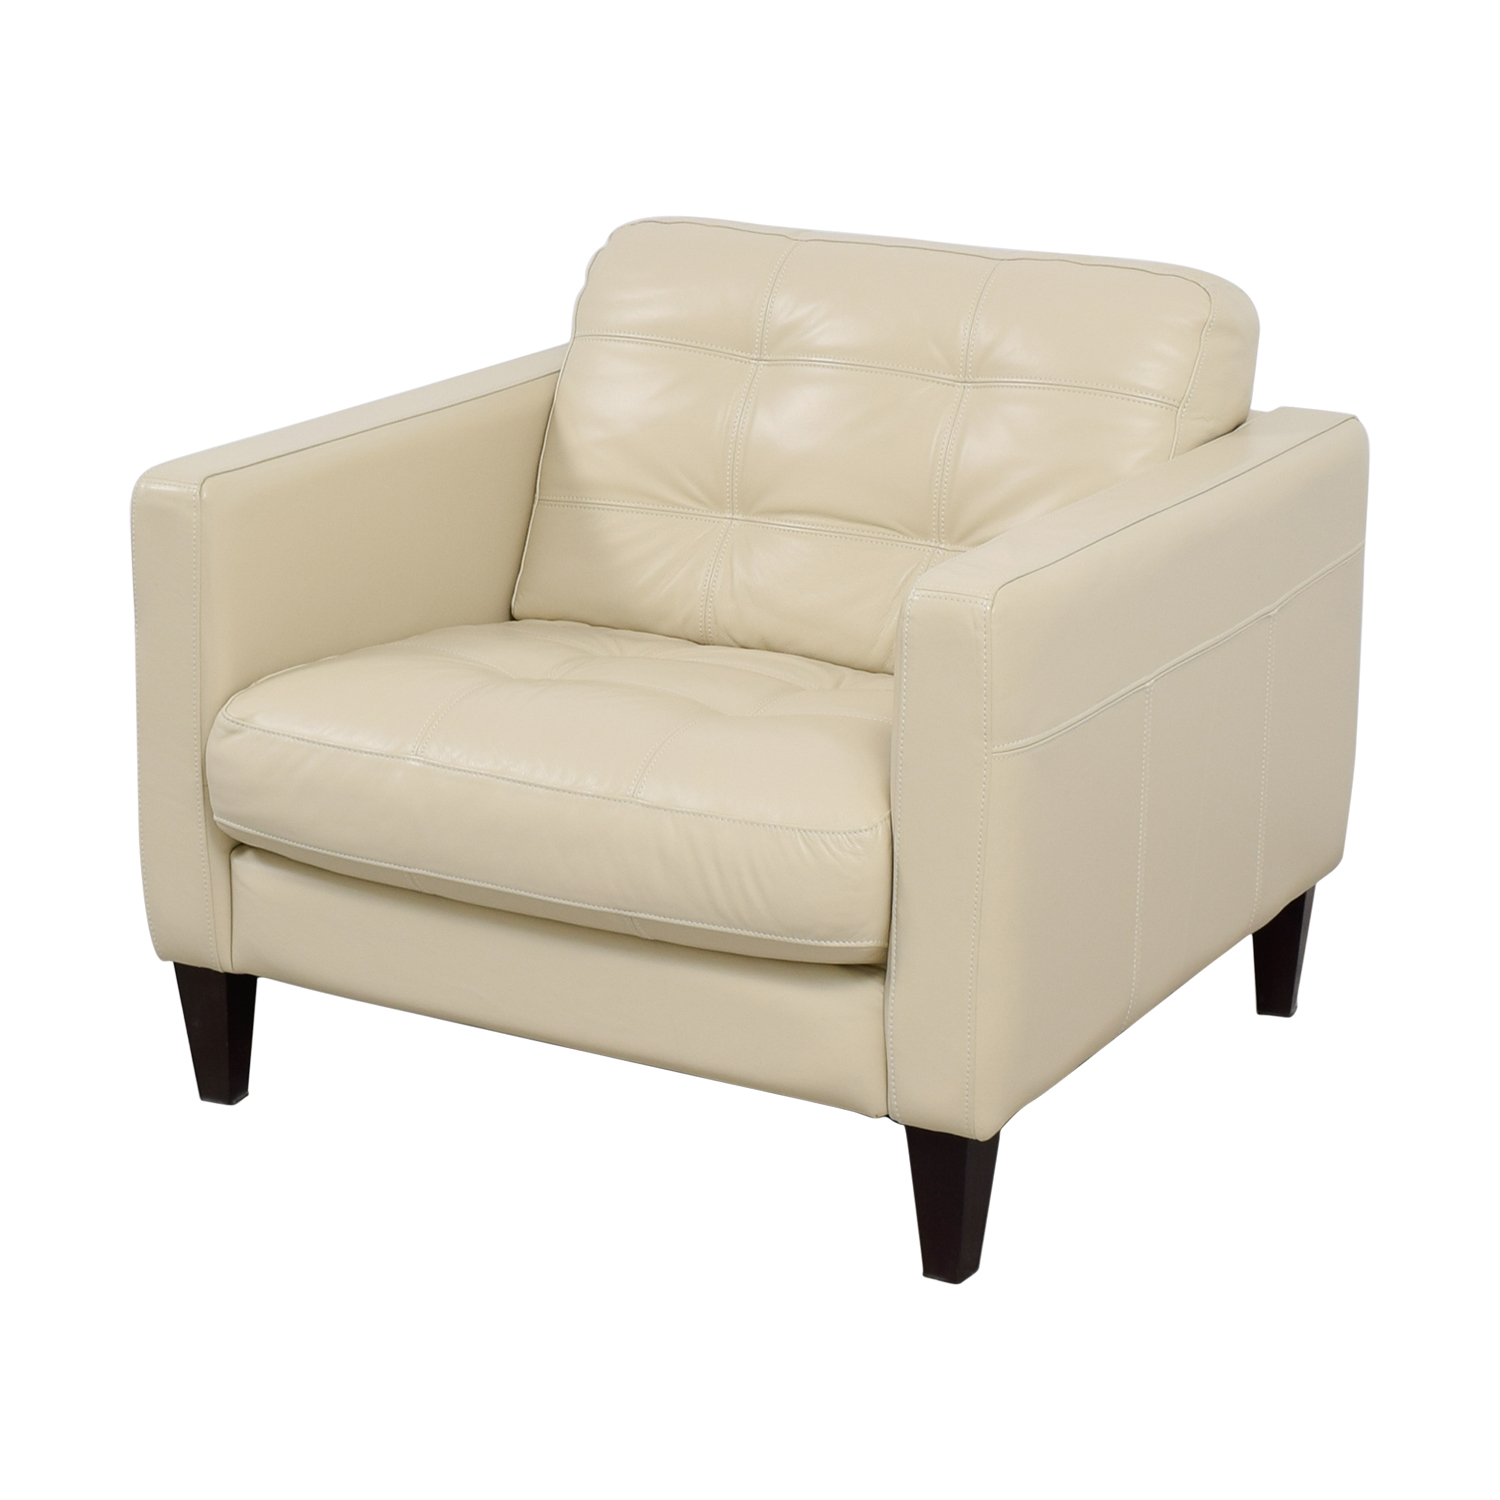 48 OFF  Macys Macys Milano White Leather Tufted Accent